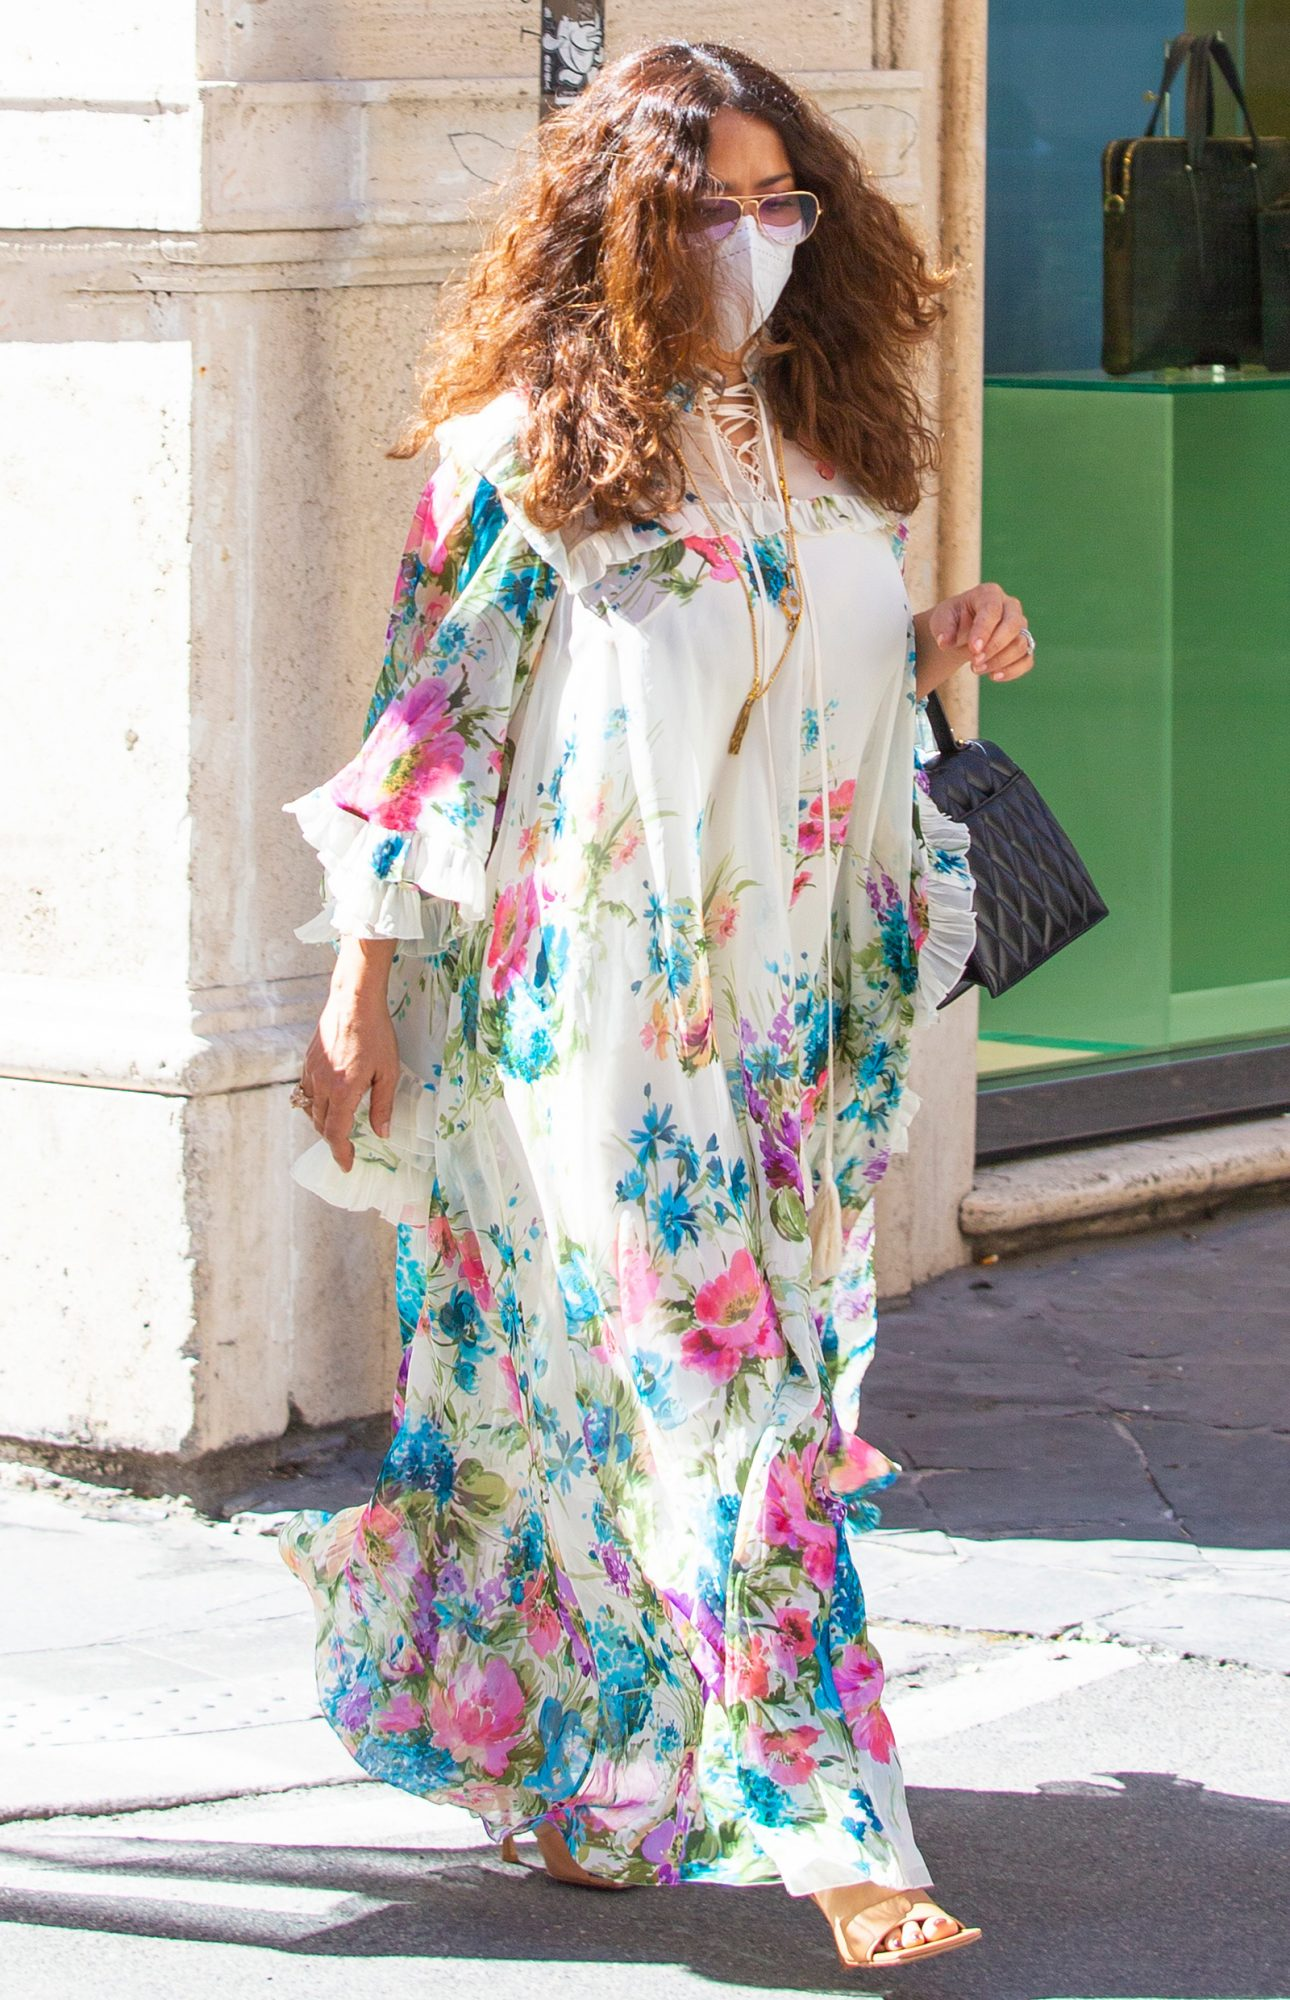 Salma Hayek seen strolling in Rome, wearing a flowered gown